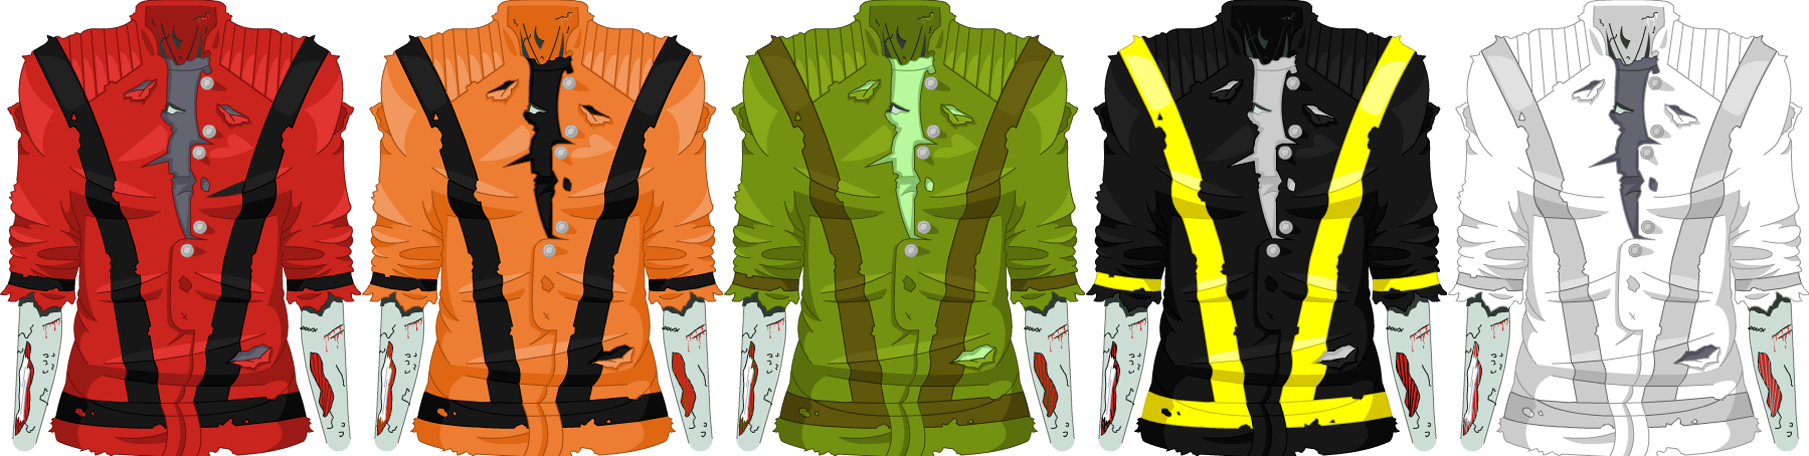 October 2008 Thriller Zombie Jacket - Male